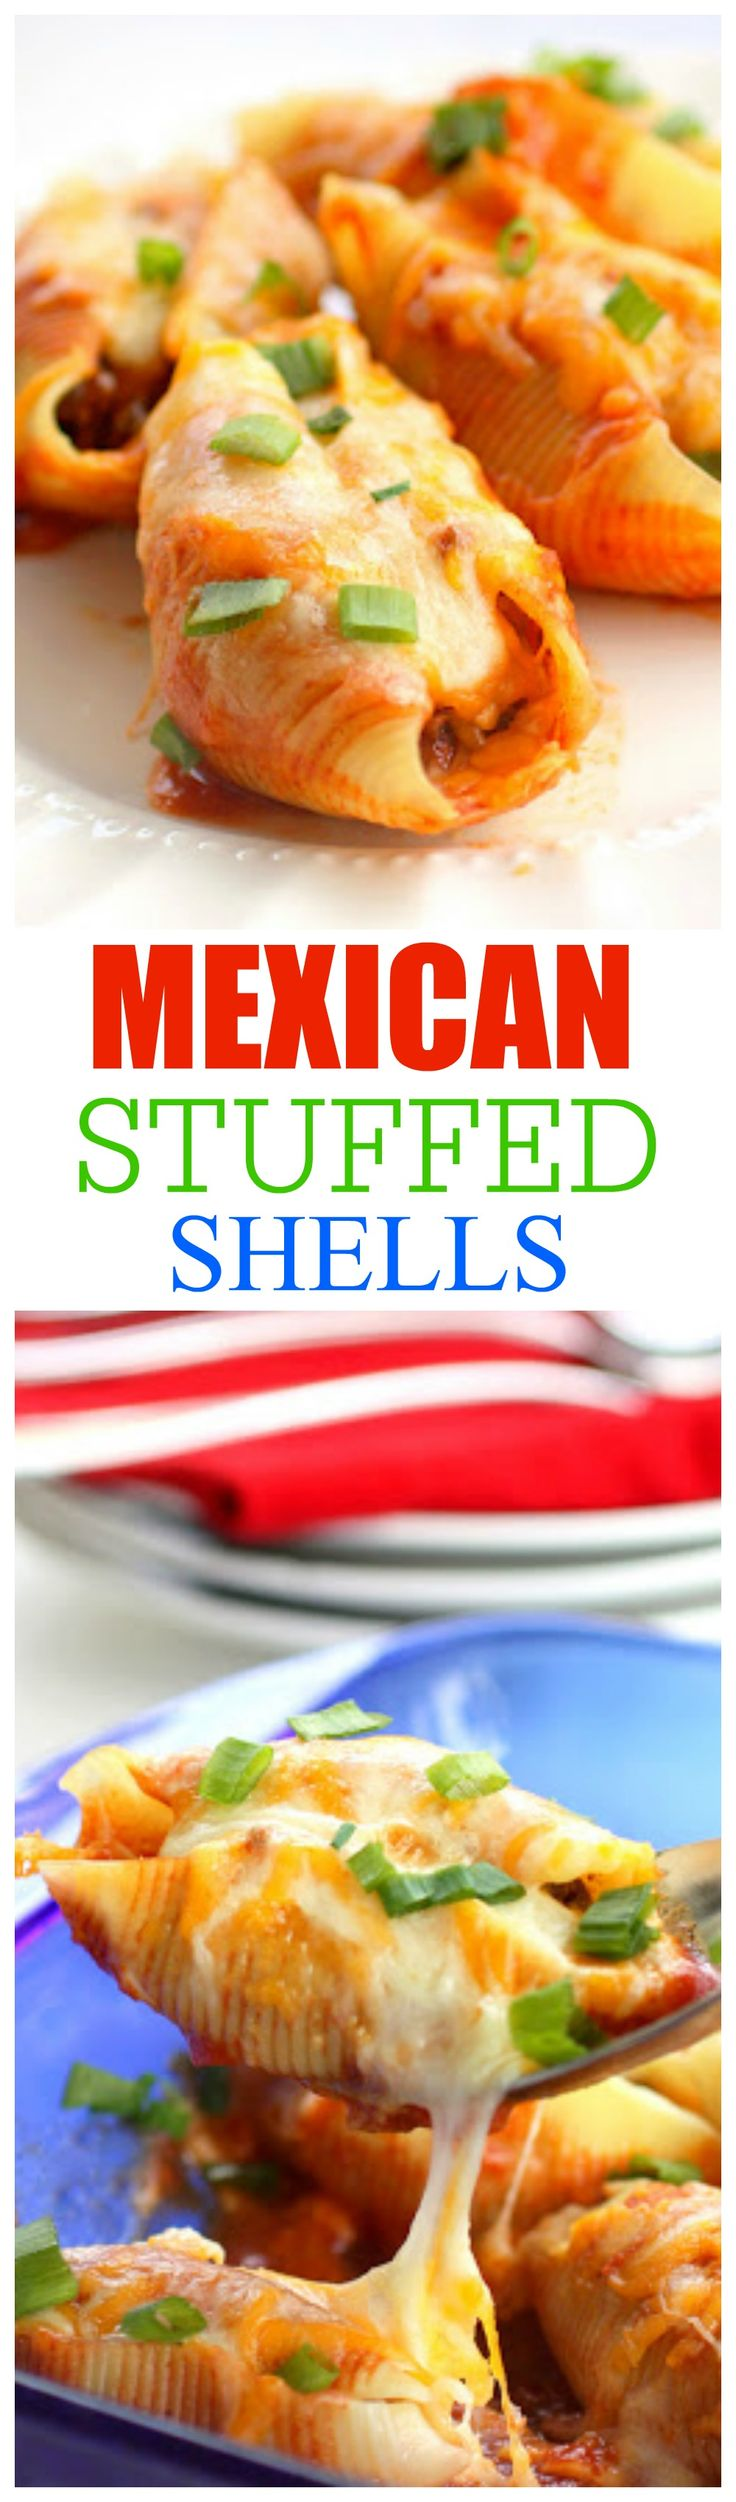 Mexican Stuffed Shells - so easy and such a good Mexican meal! the-girl-who-ate-everything.com